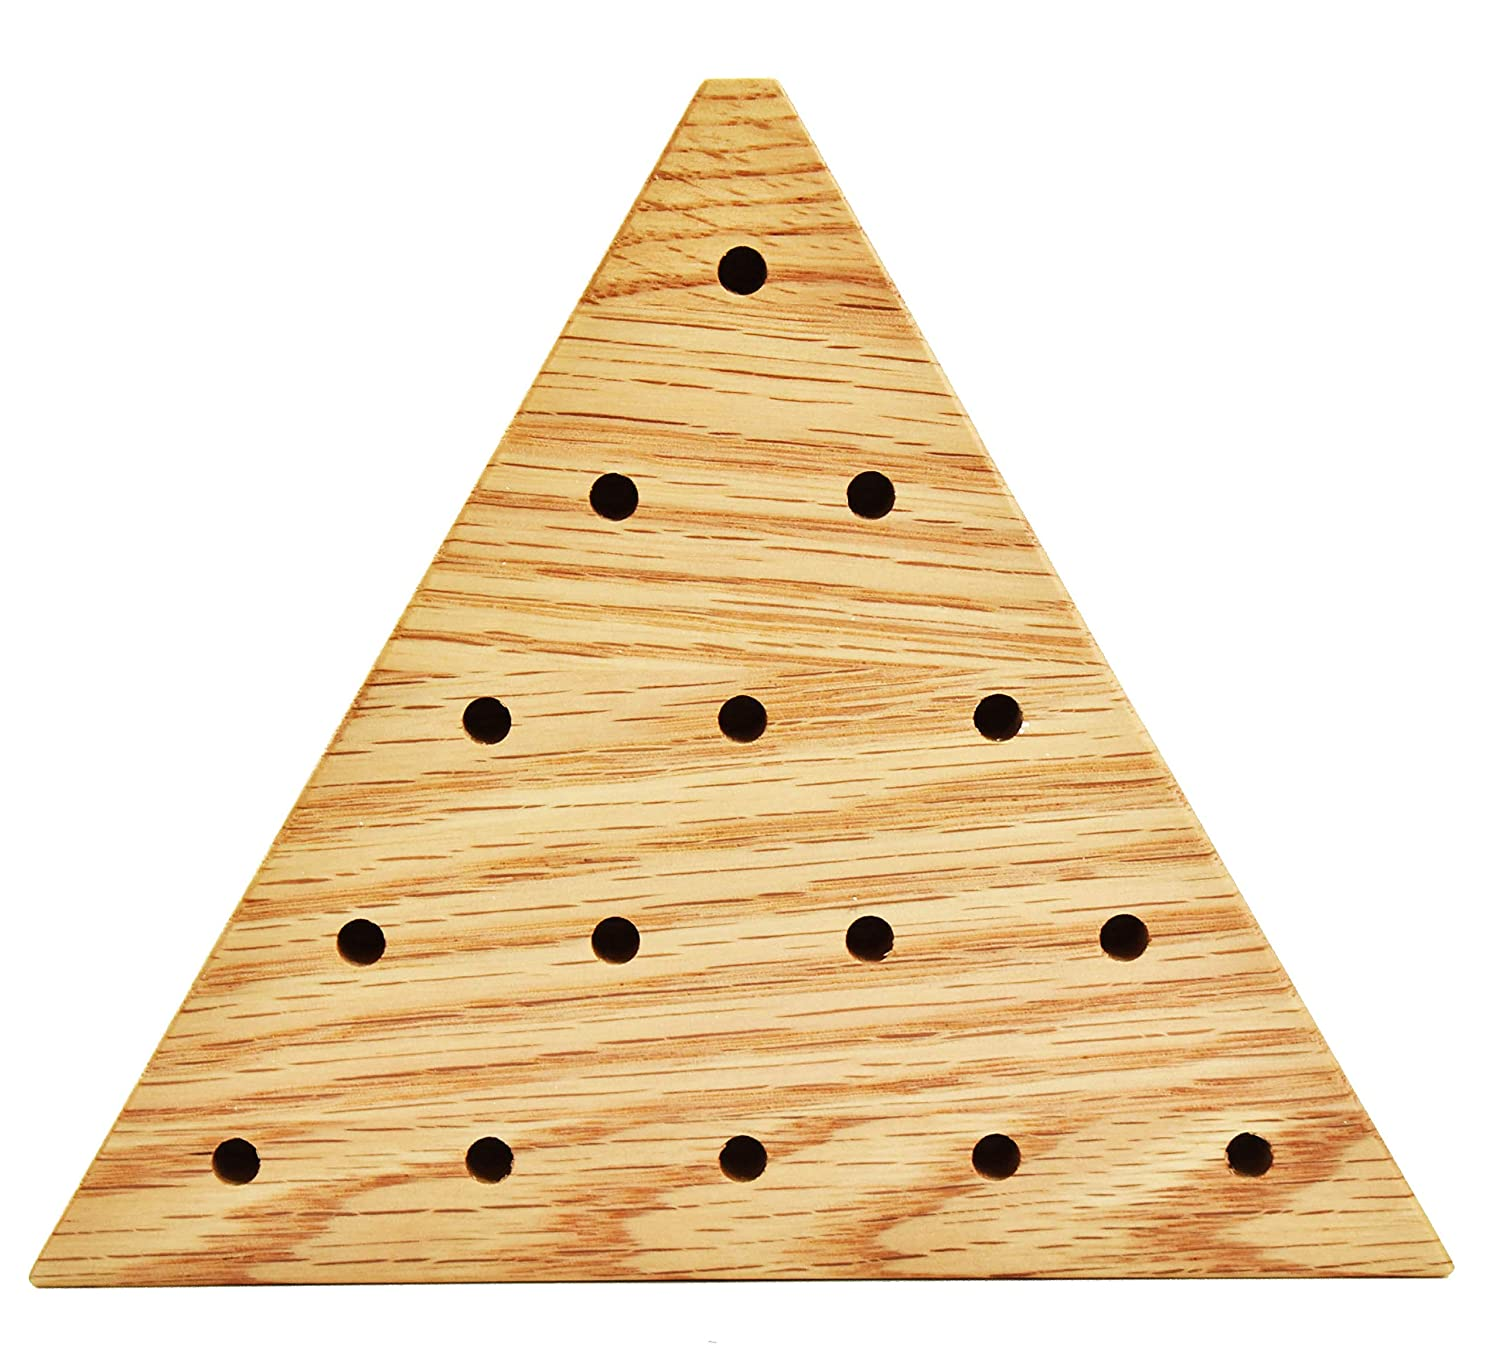 Solid Oak Wooden Peg Game Tricky Triangle by Cauff